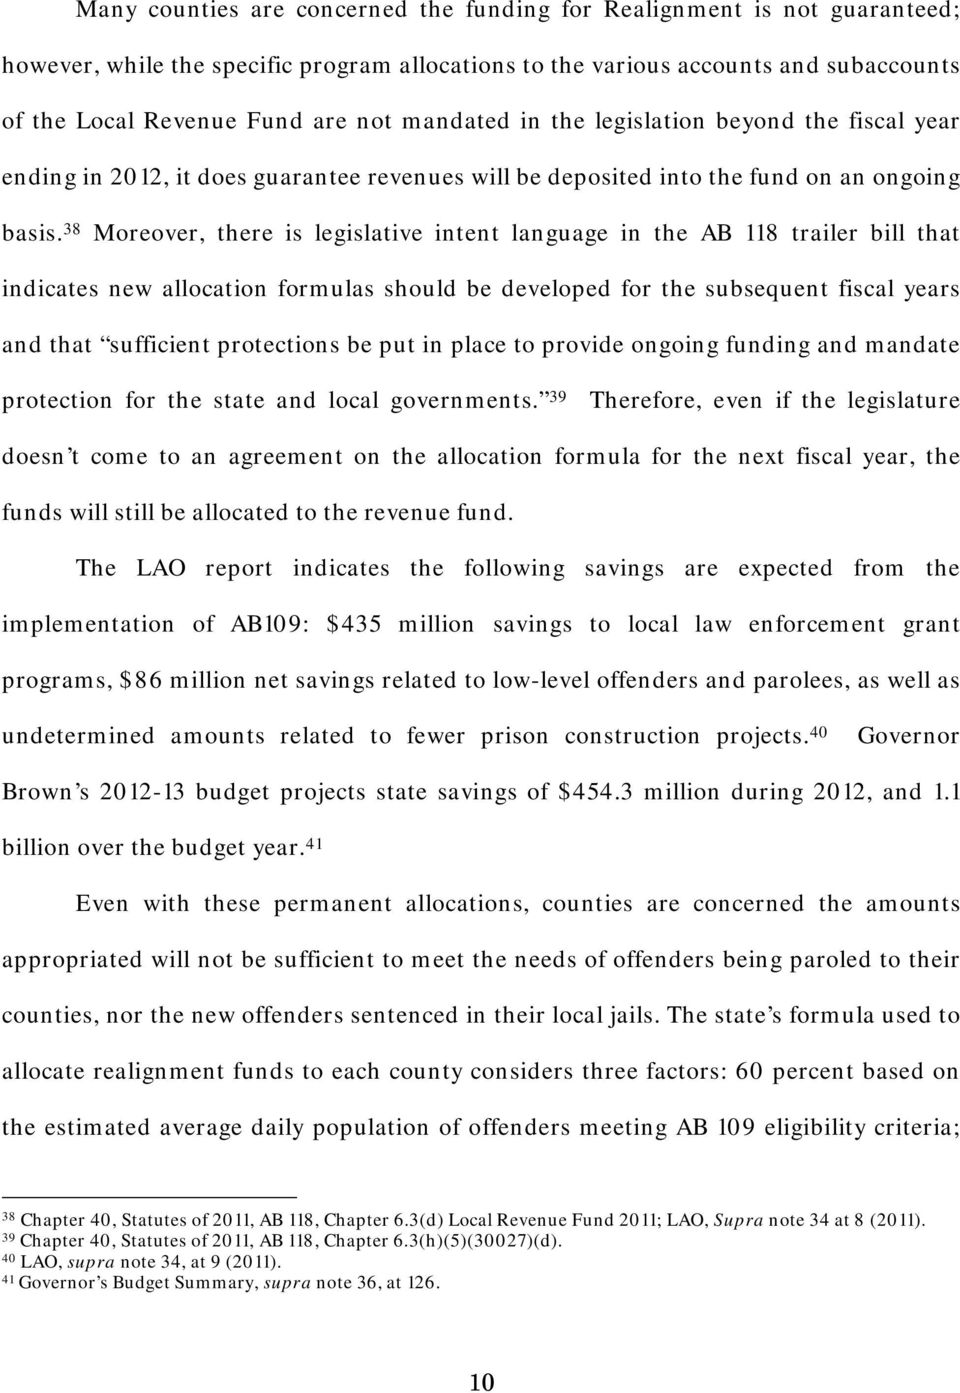 38 Moreover, there is legislative intent language in the AB 118 trailer bill that indicates new allocation formulas should be developed for the subsequent fiscal years and that sufficient protections